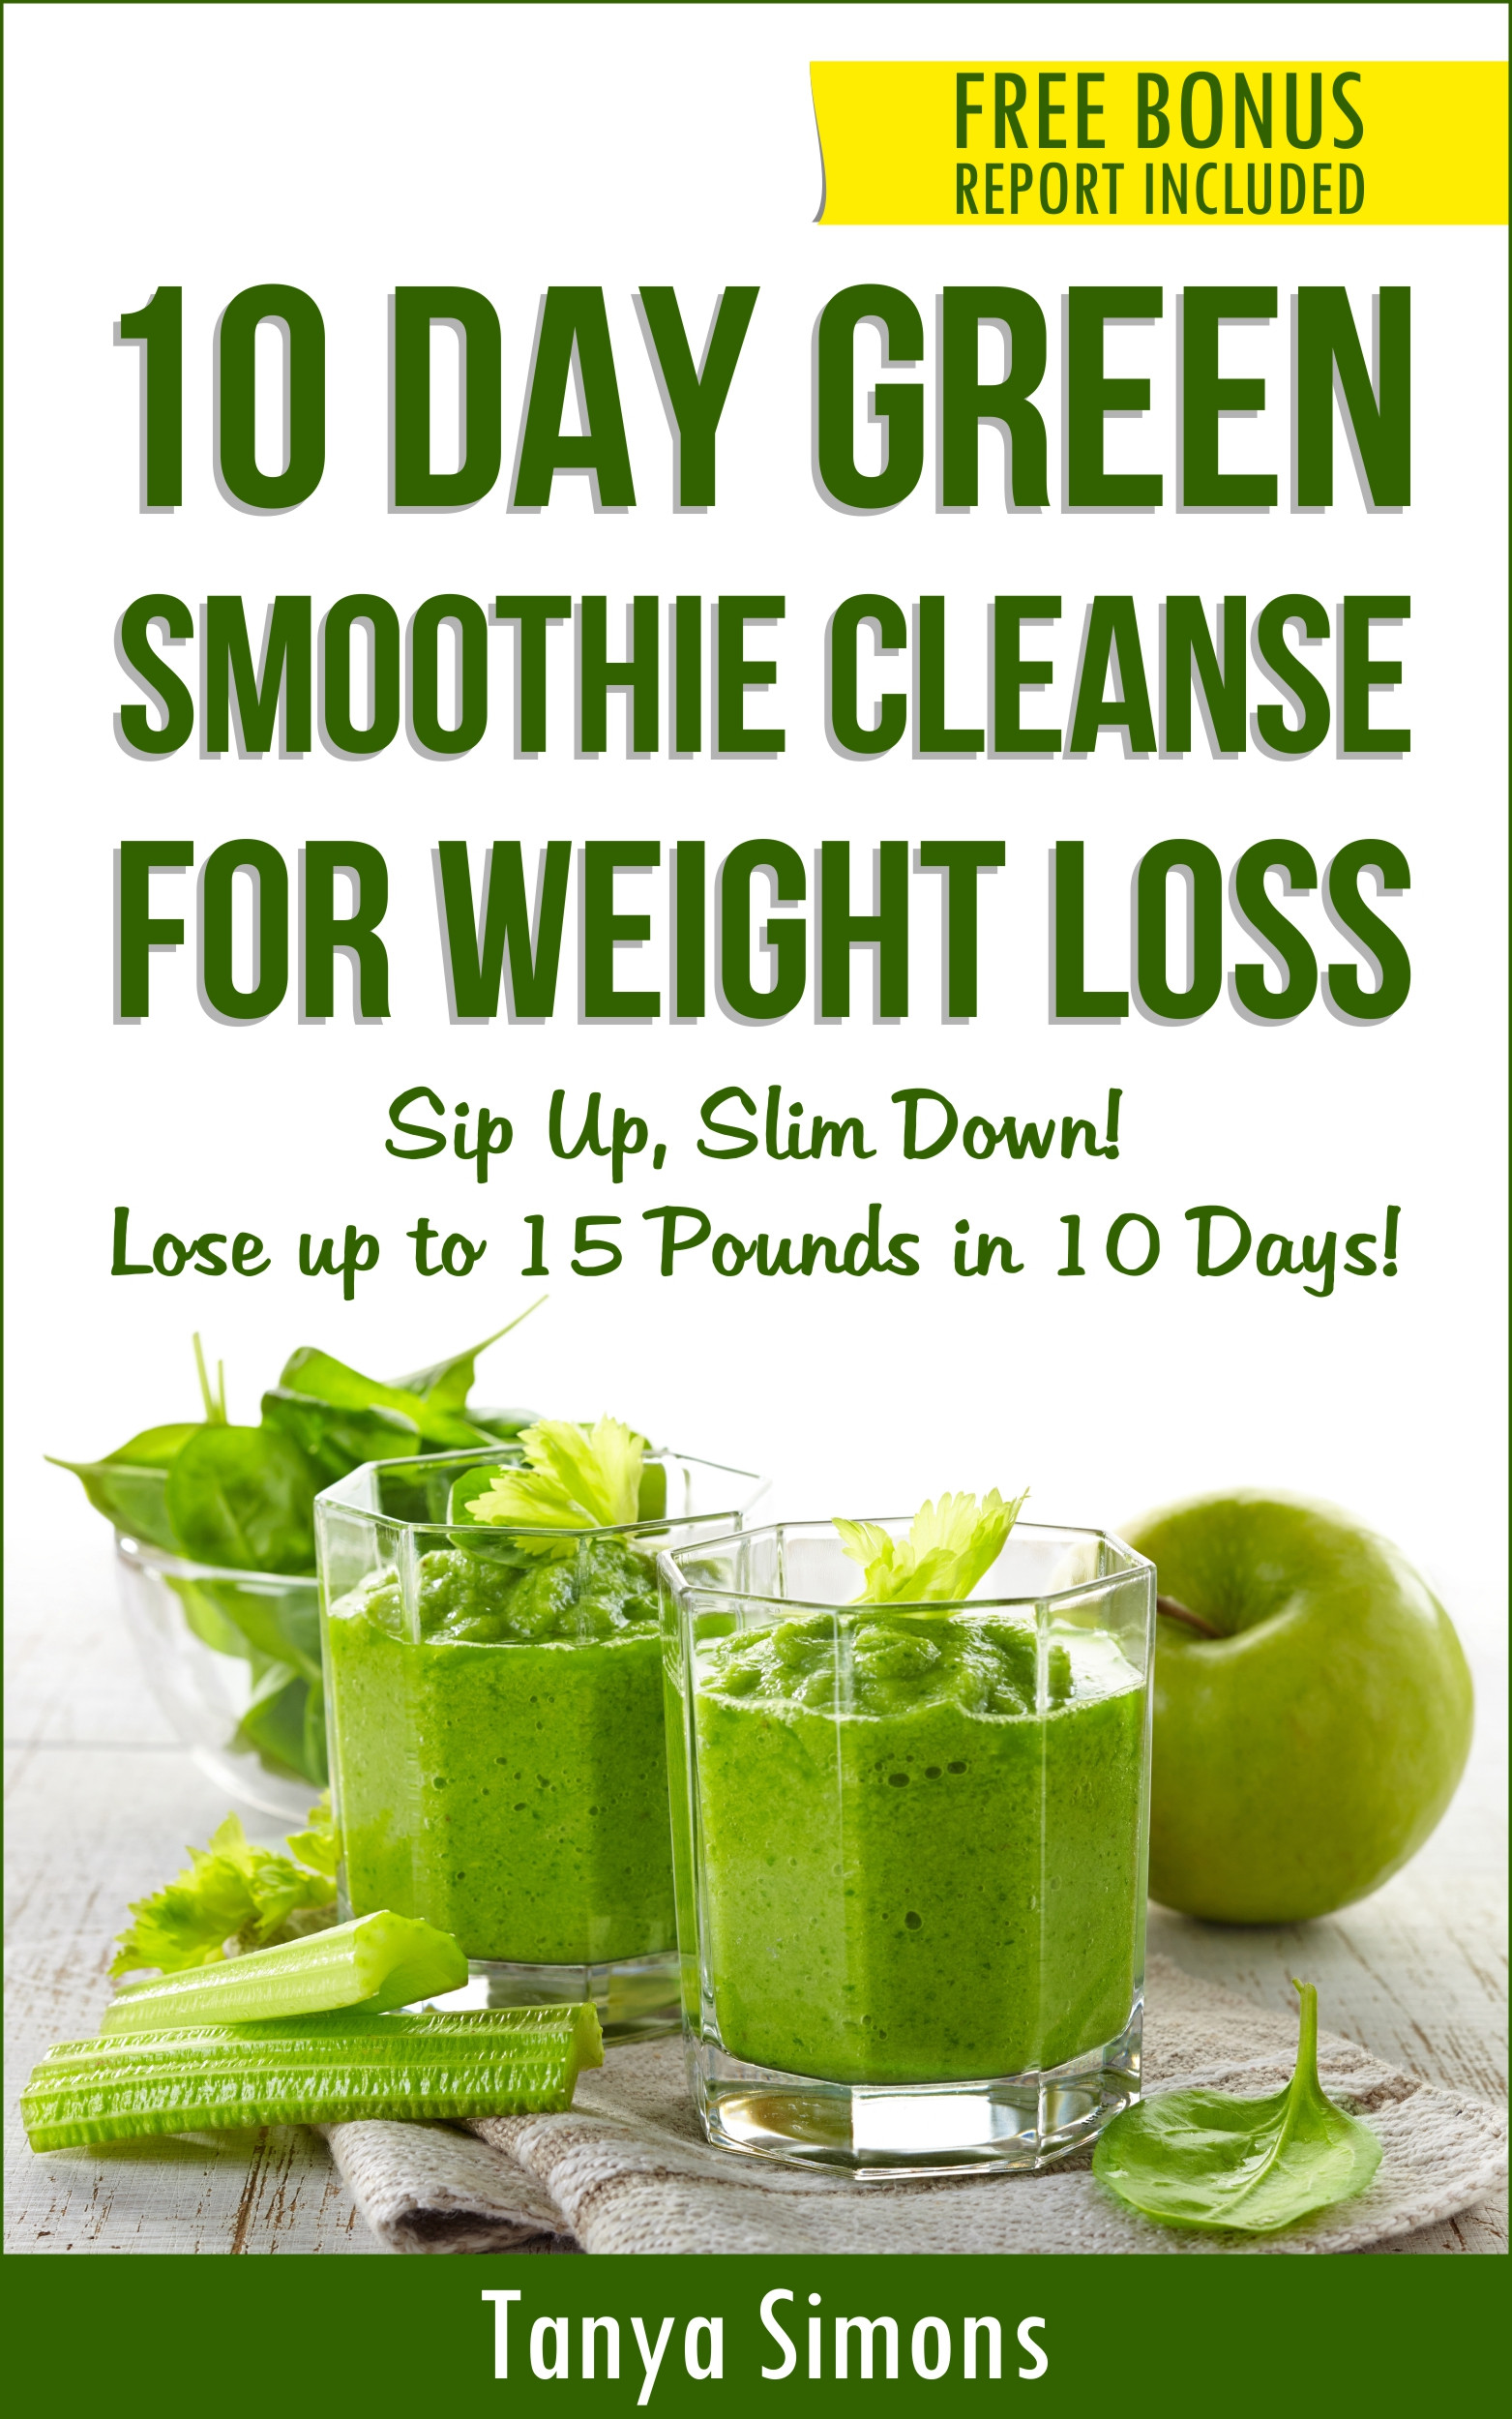 Best Green Smoothie Recipes For Weight Loss  10 Day Green Smoothie Cleanse Lose 15lbs with 10 Day